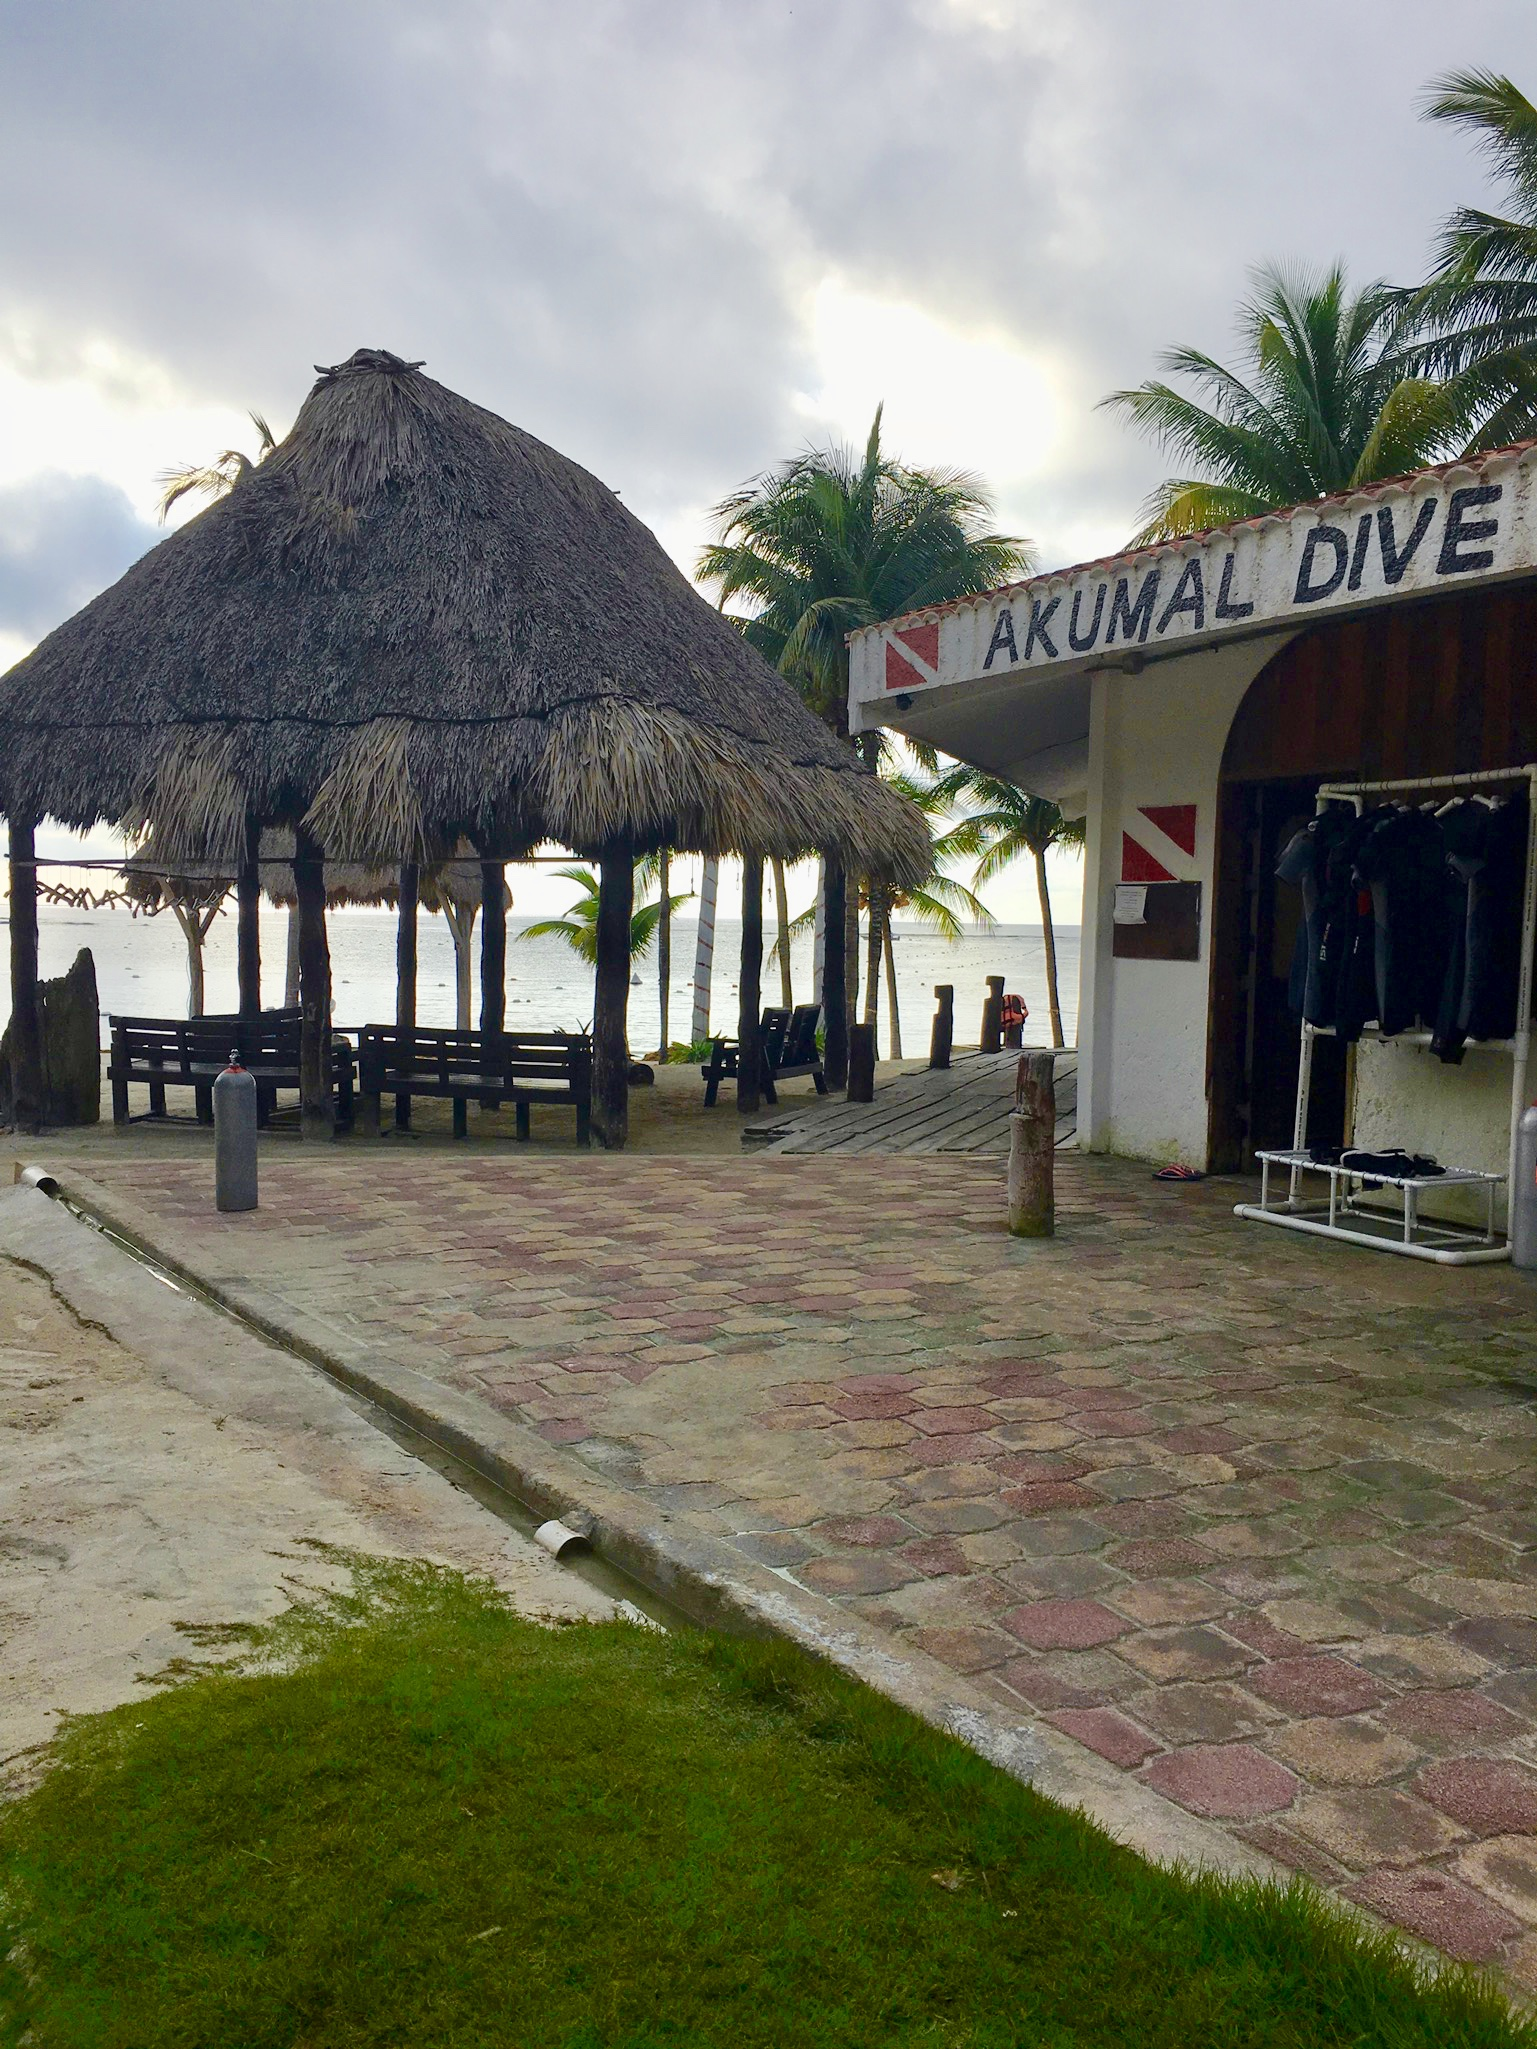 Akumal Dive Center is one of the dive shops from where you can rent gear